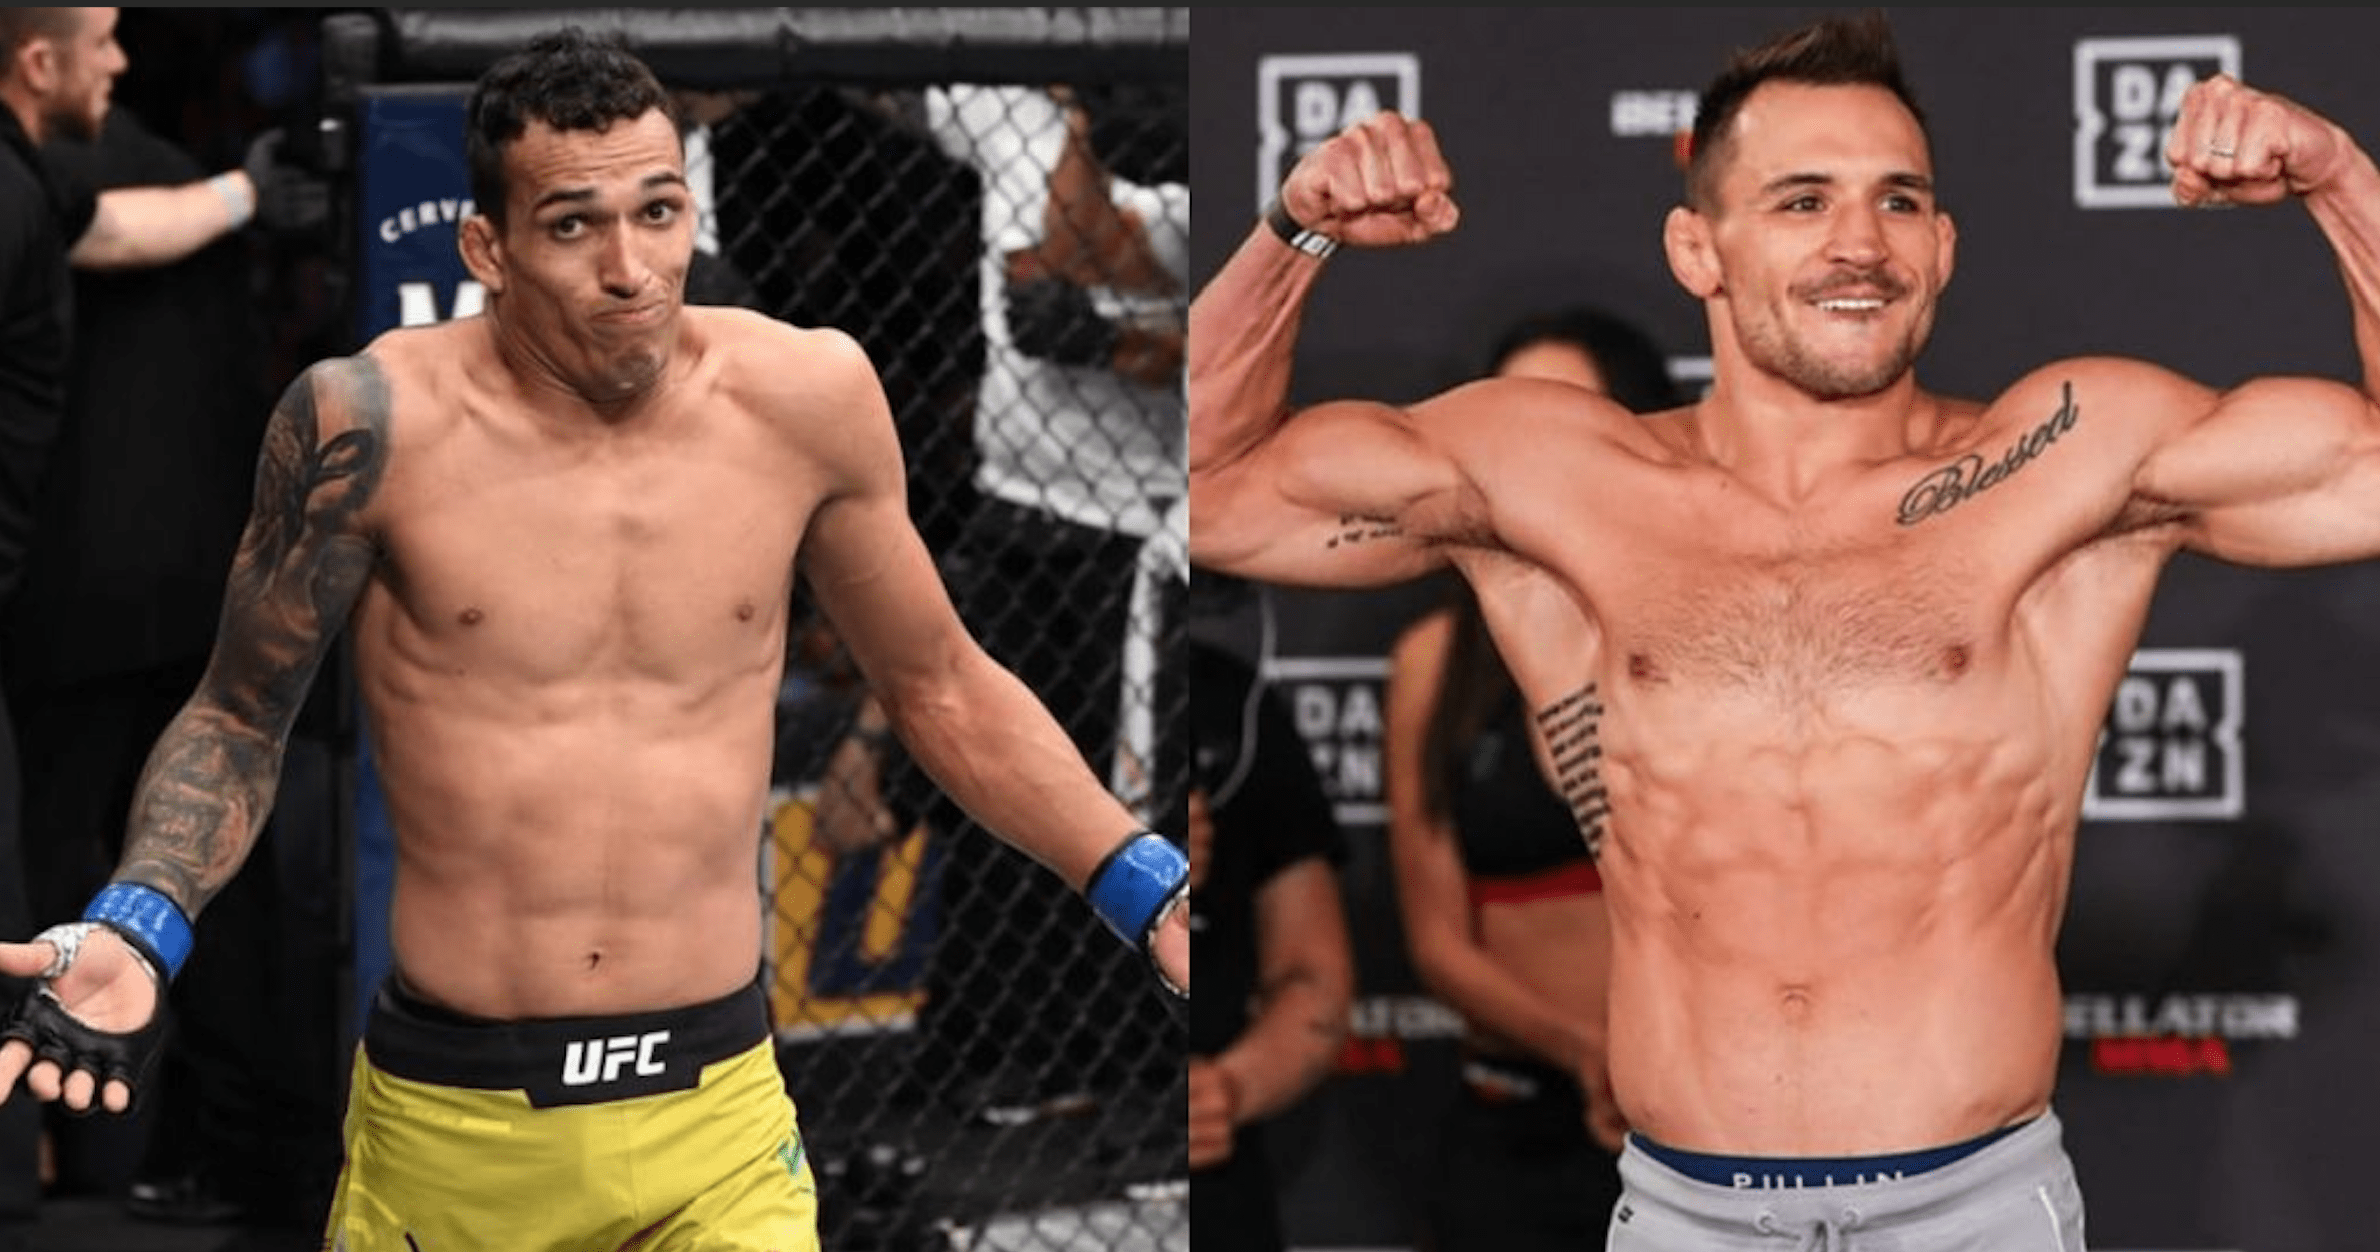 Oliveira To Fight Chandler For Lightweight Title At UFC 262